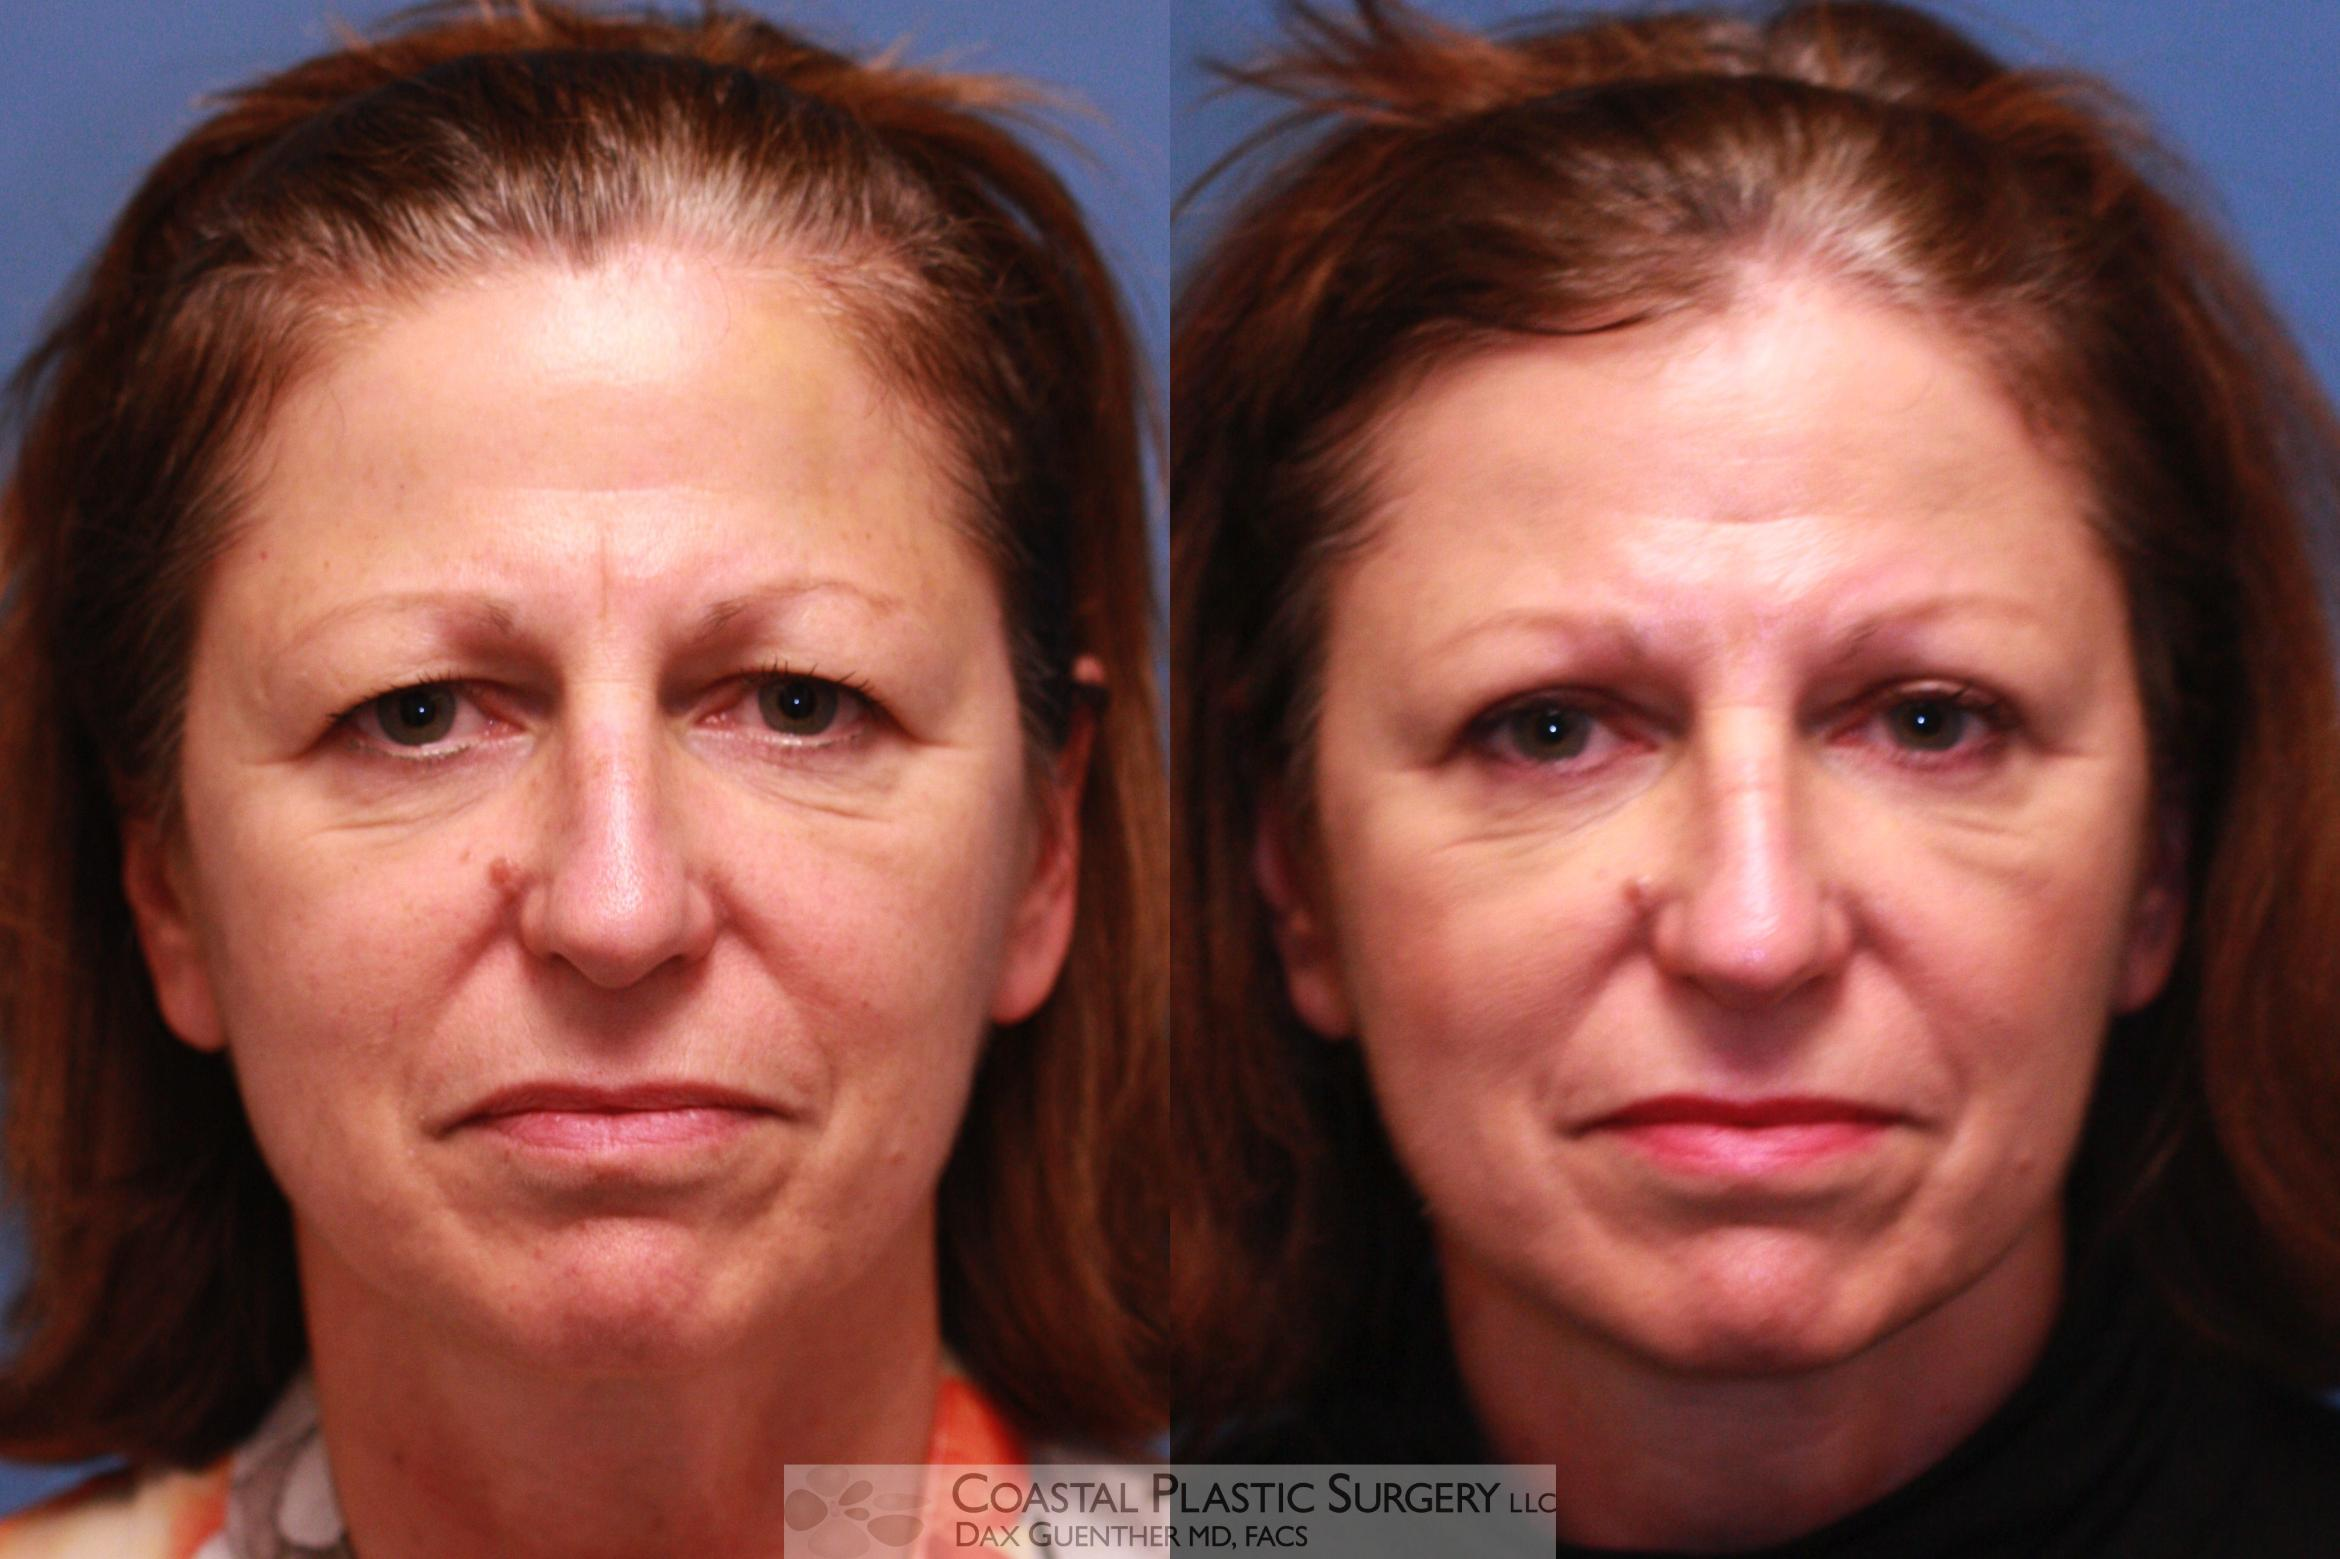 Brow Lift Before & After Photo | Hingham, MA | Dax Guenther, MD: Coastal Plastic Surgery